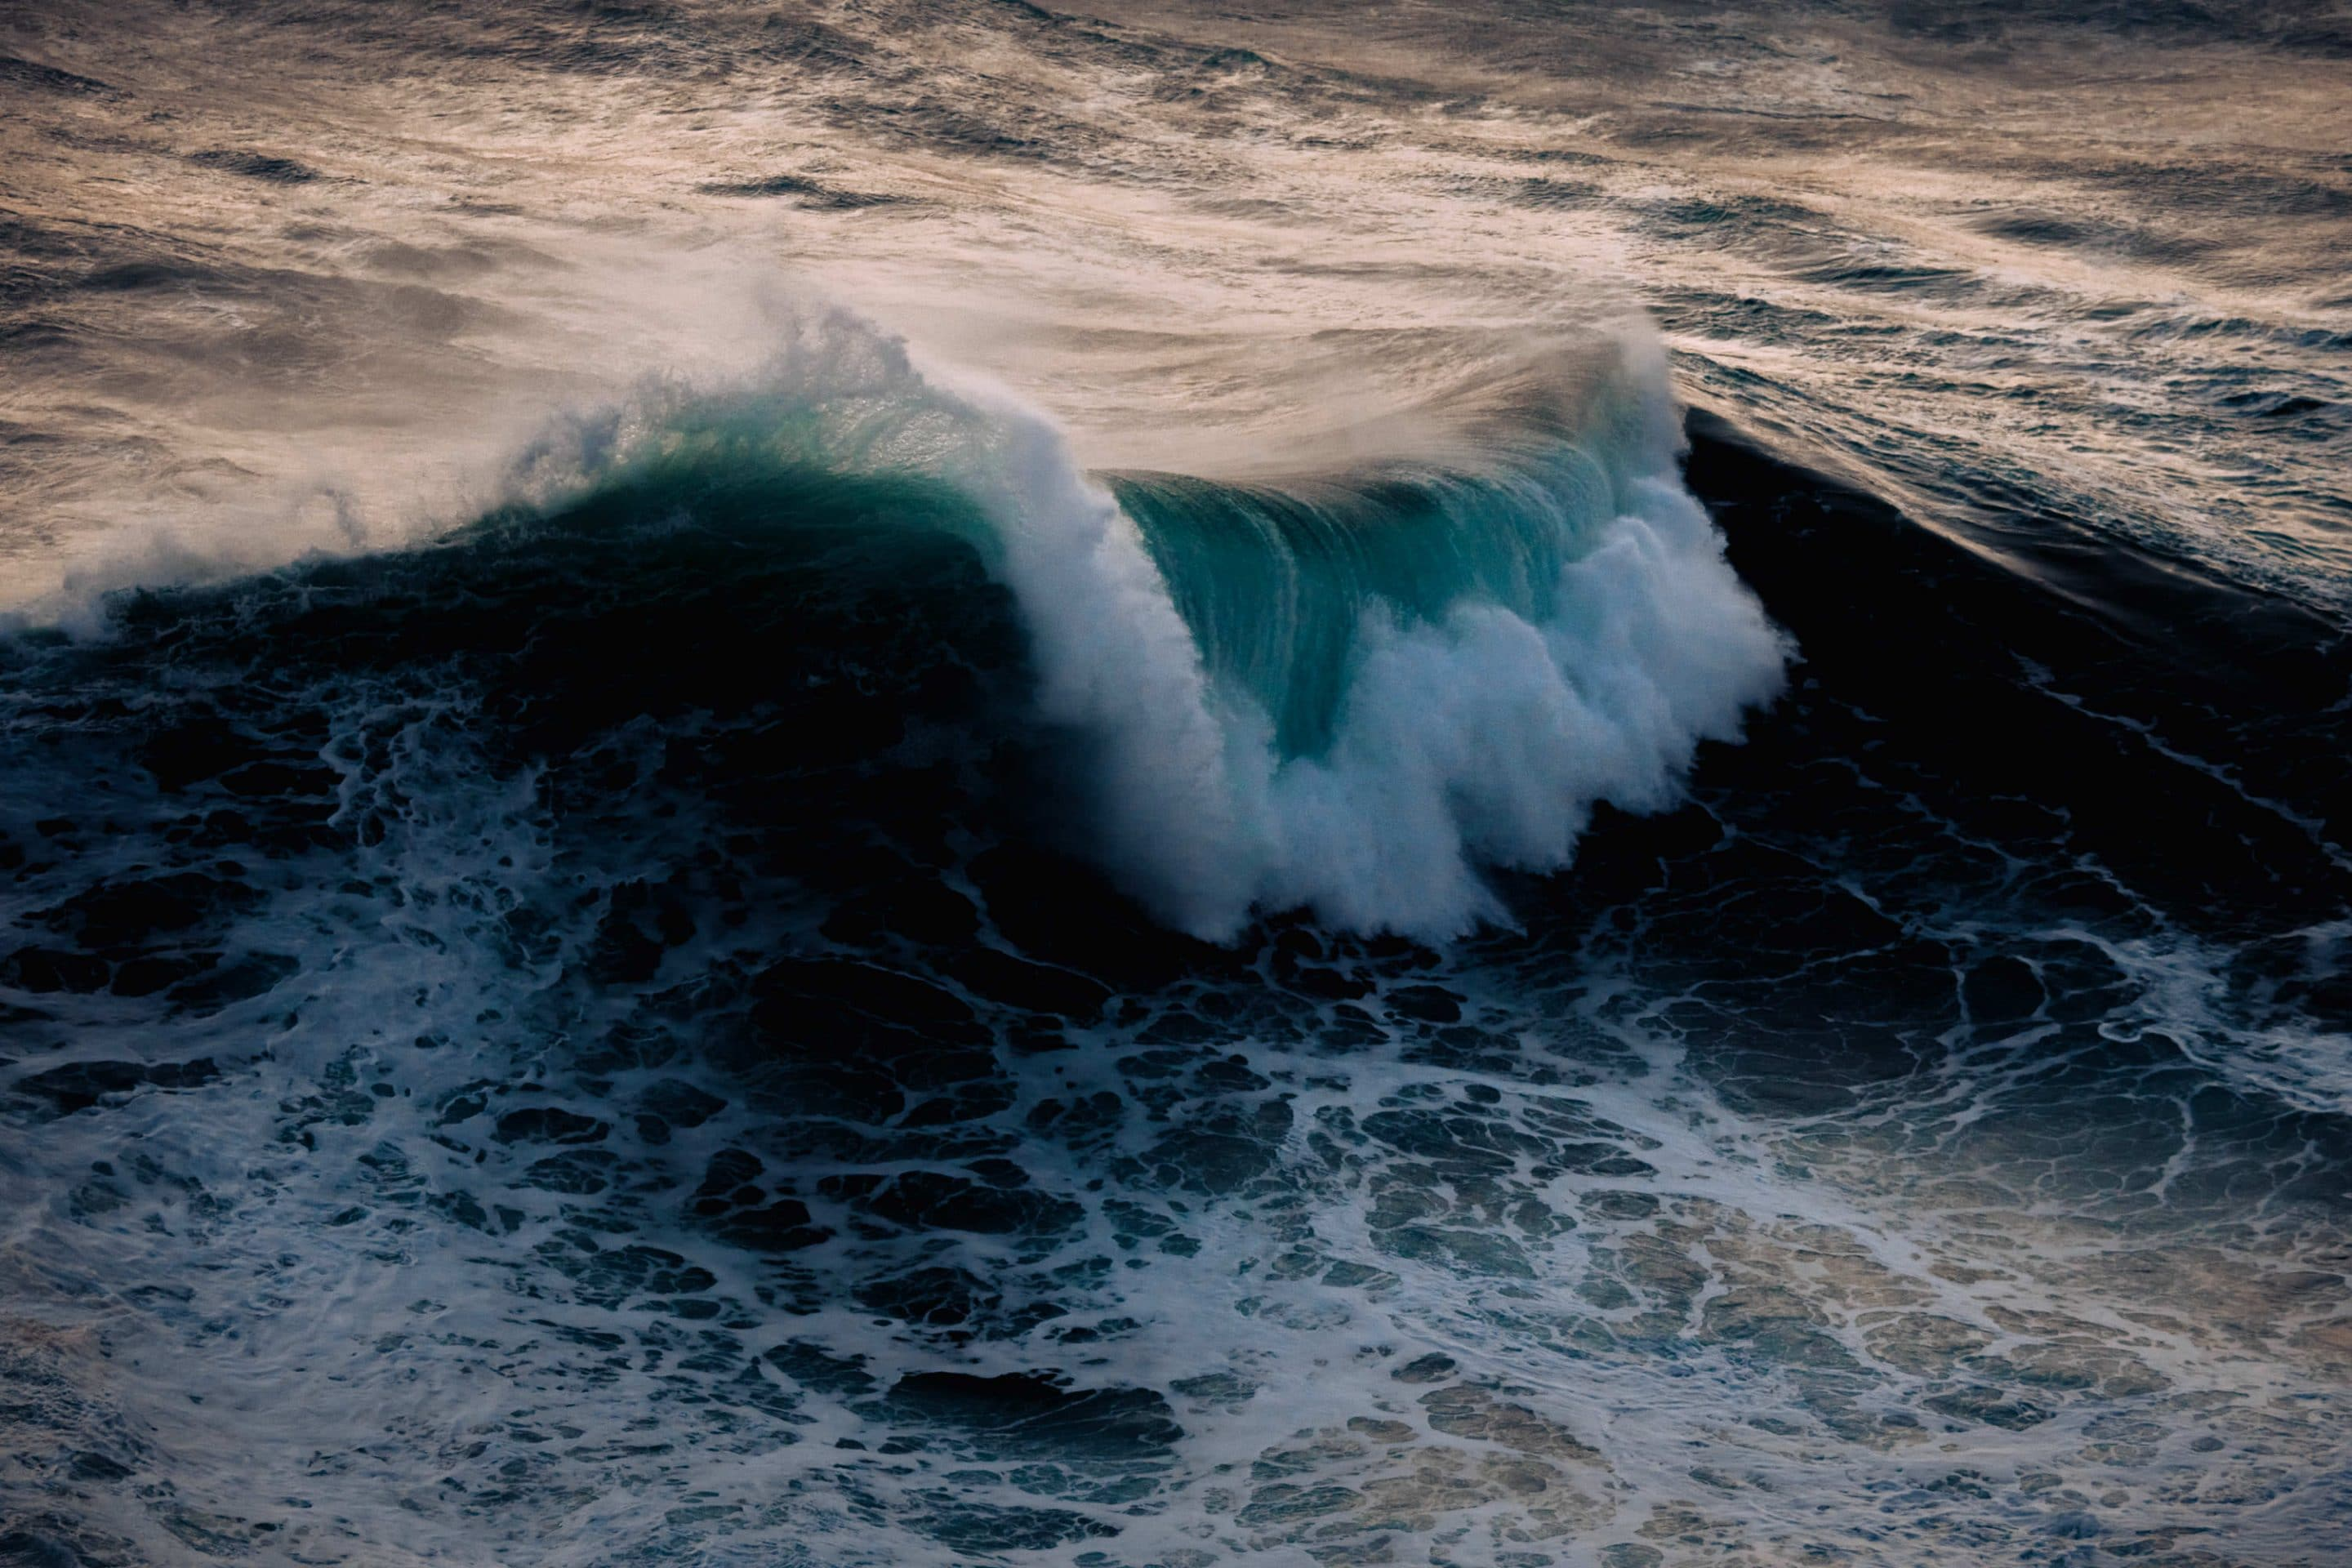 Waves crashing on the Atlantic coast at Nazaré, Portugal during a beautiful sunset by photographer Michael Schauer